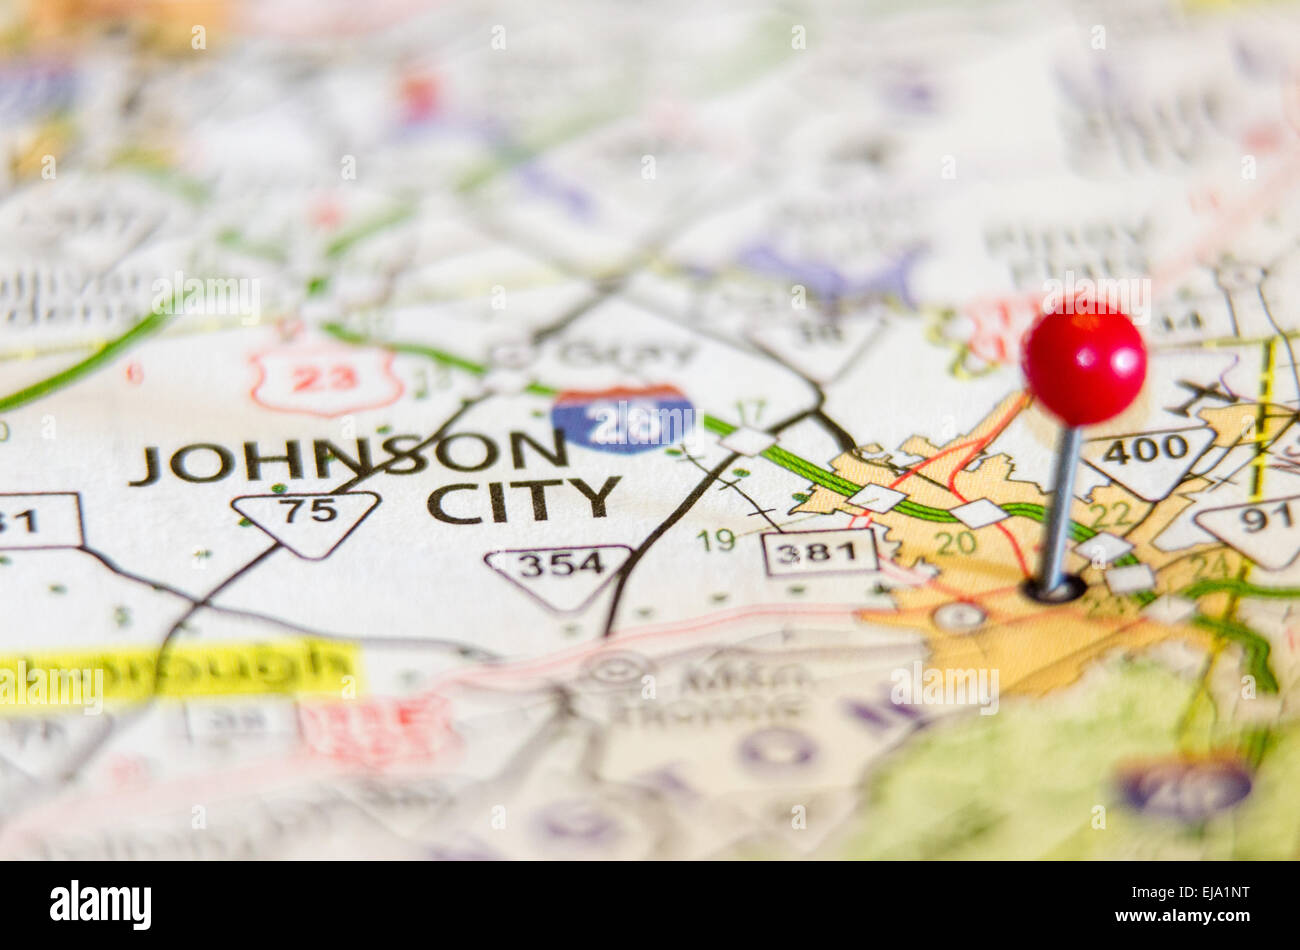 Johnson City in Tennessee on map Stock Photo: 80126196 - Alamy